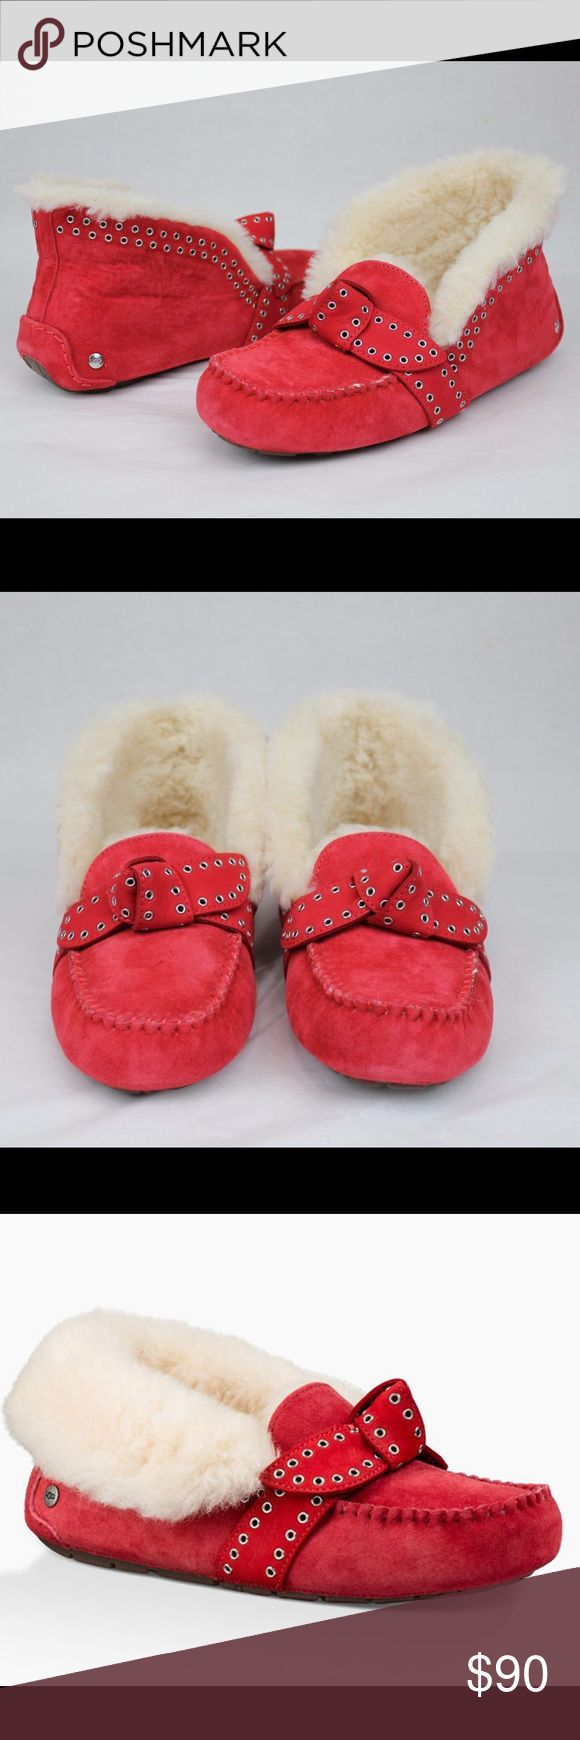 UGG POLER SLIPPERS NIB RED SUEDE 7 New in box red suede poler slippers sold out retail  $130 UGG Shoes Moccasins